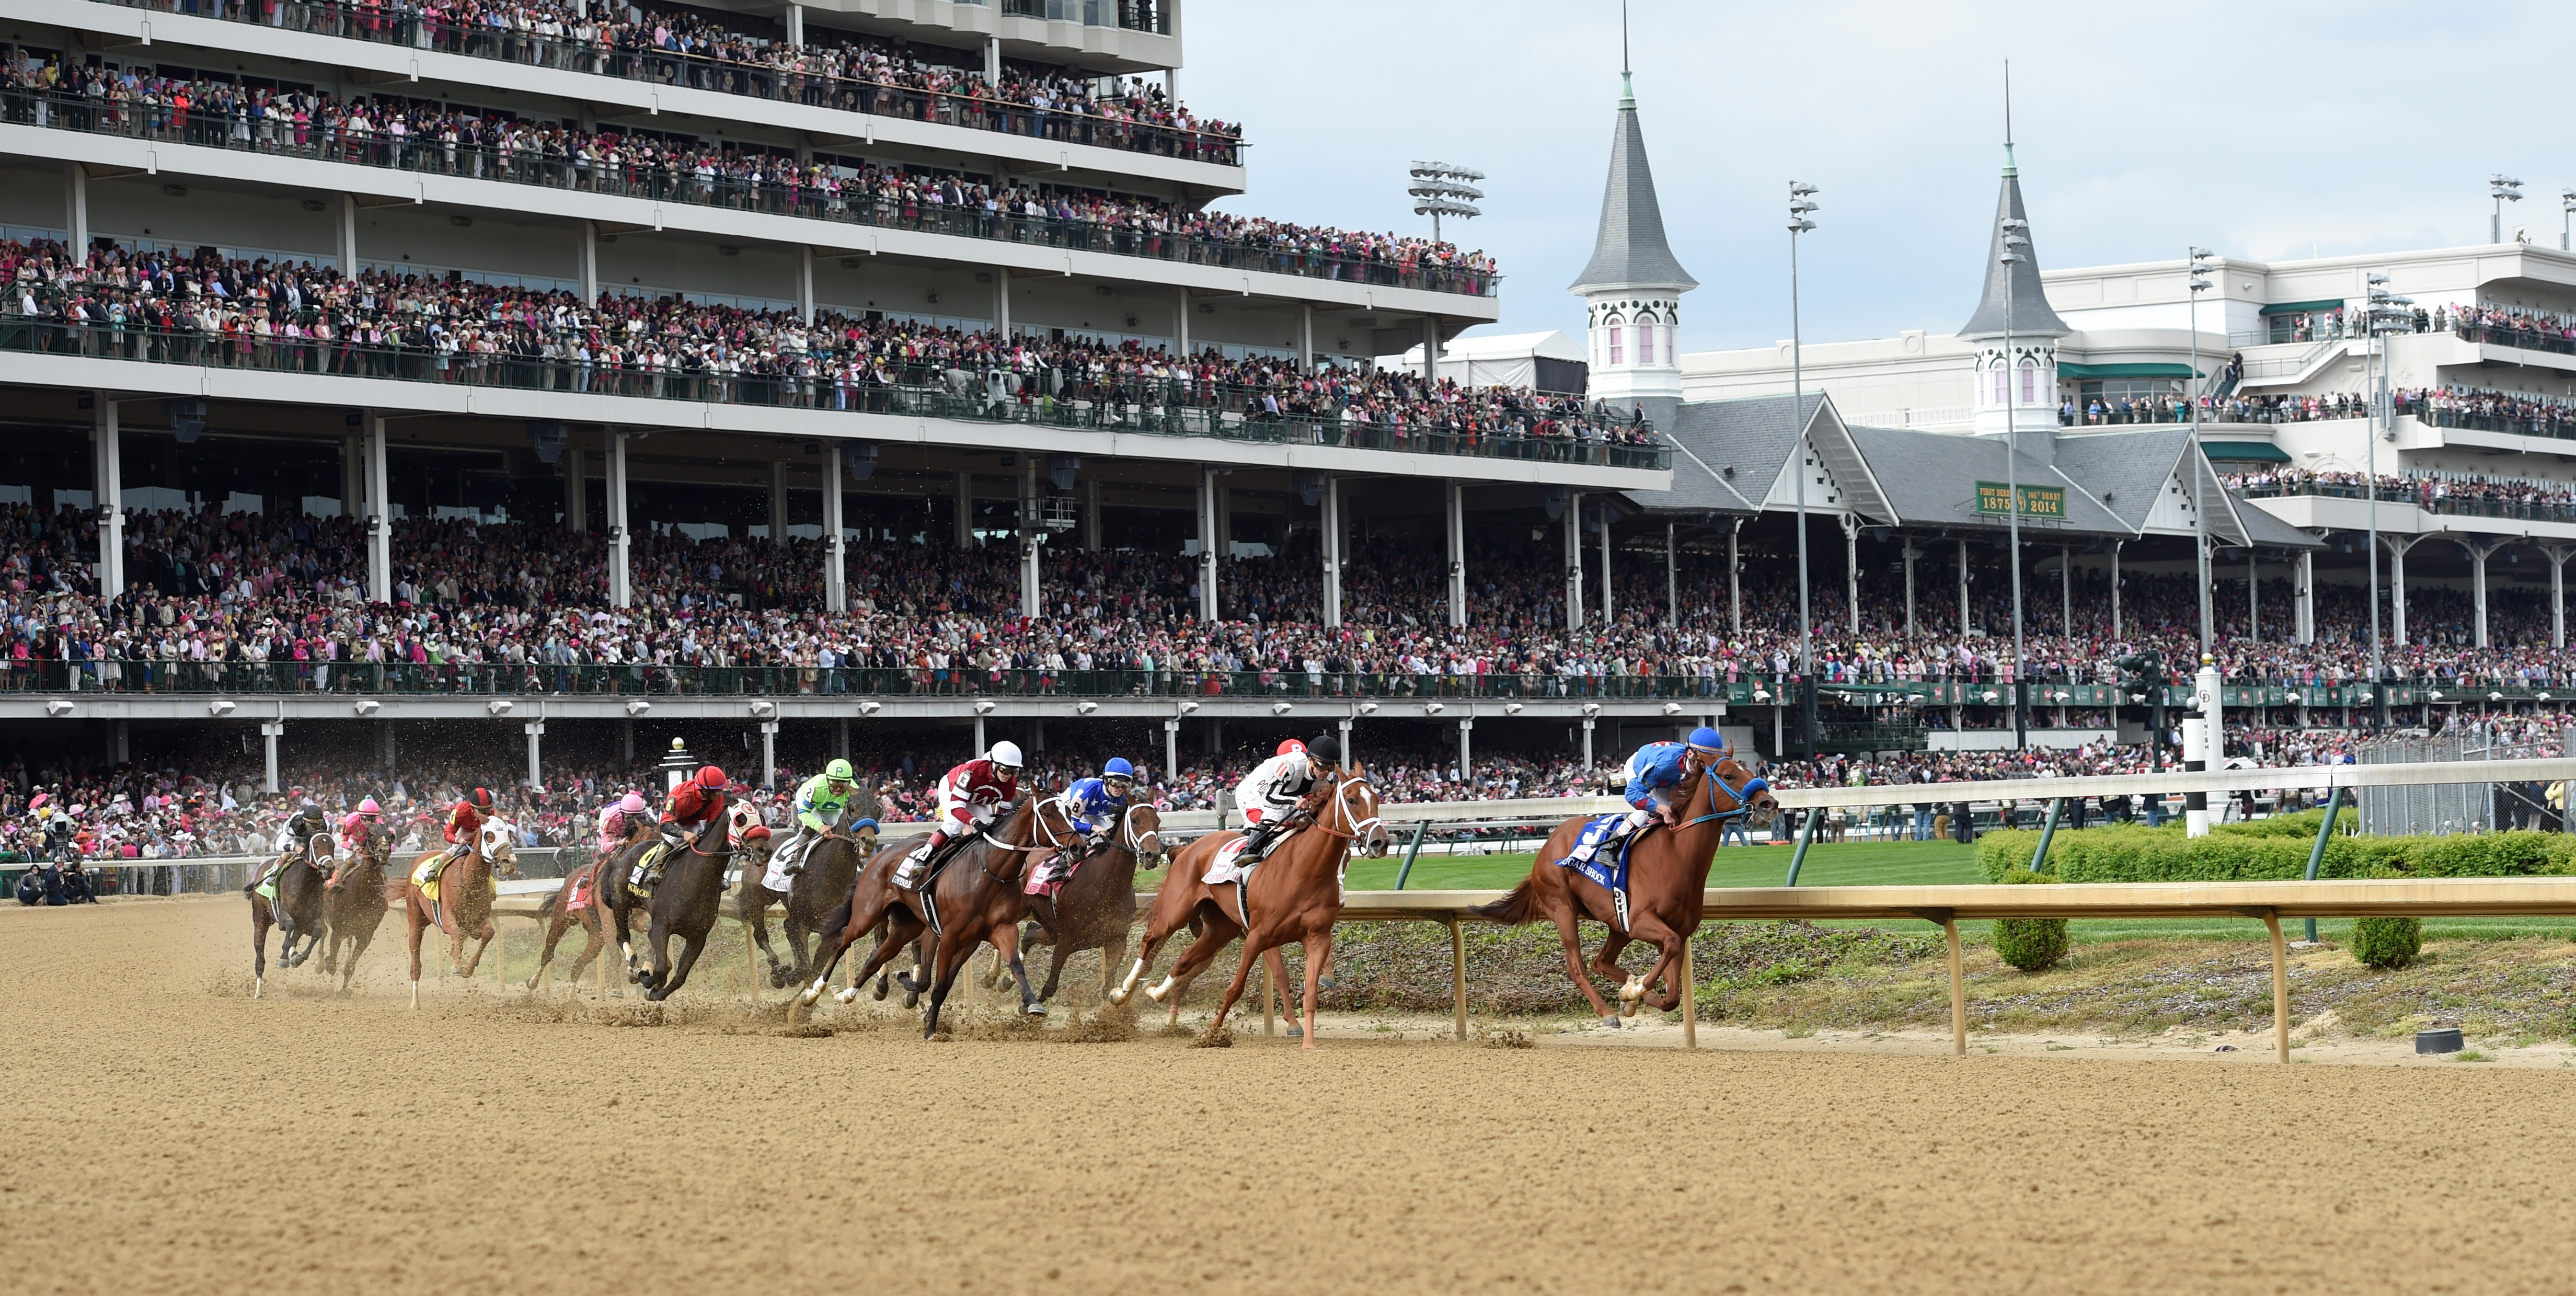 Kentucky Derby attendees can now order food place bets from their